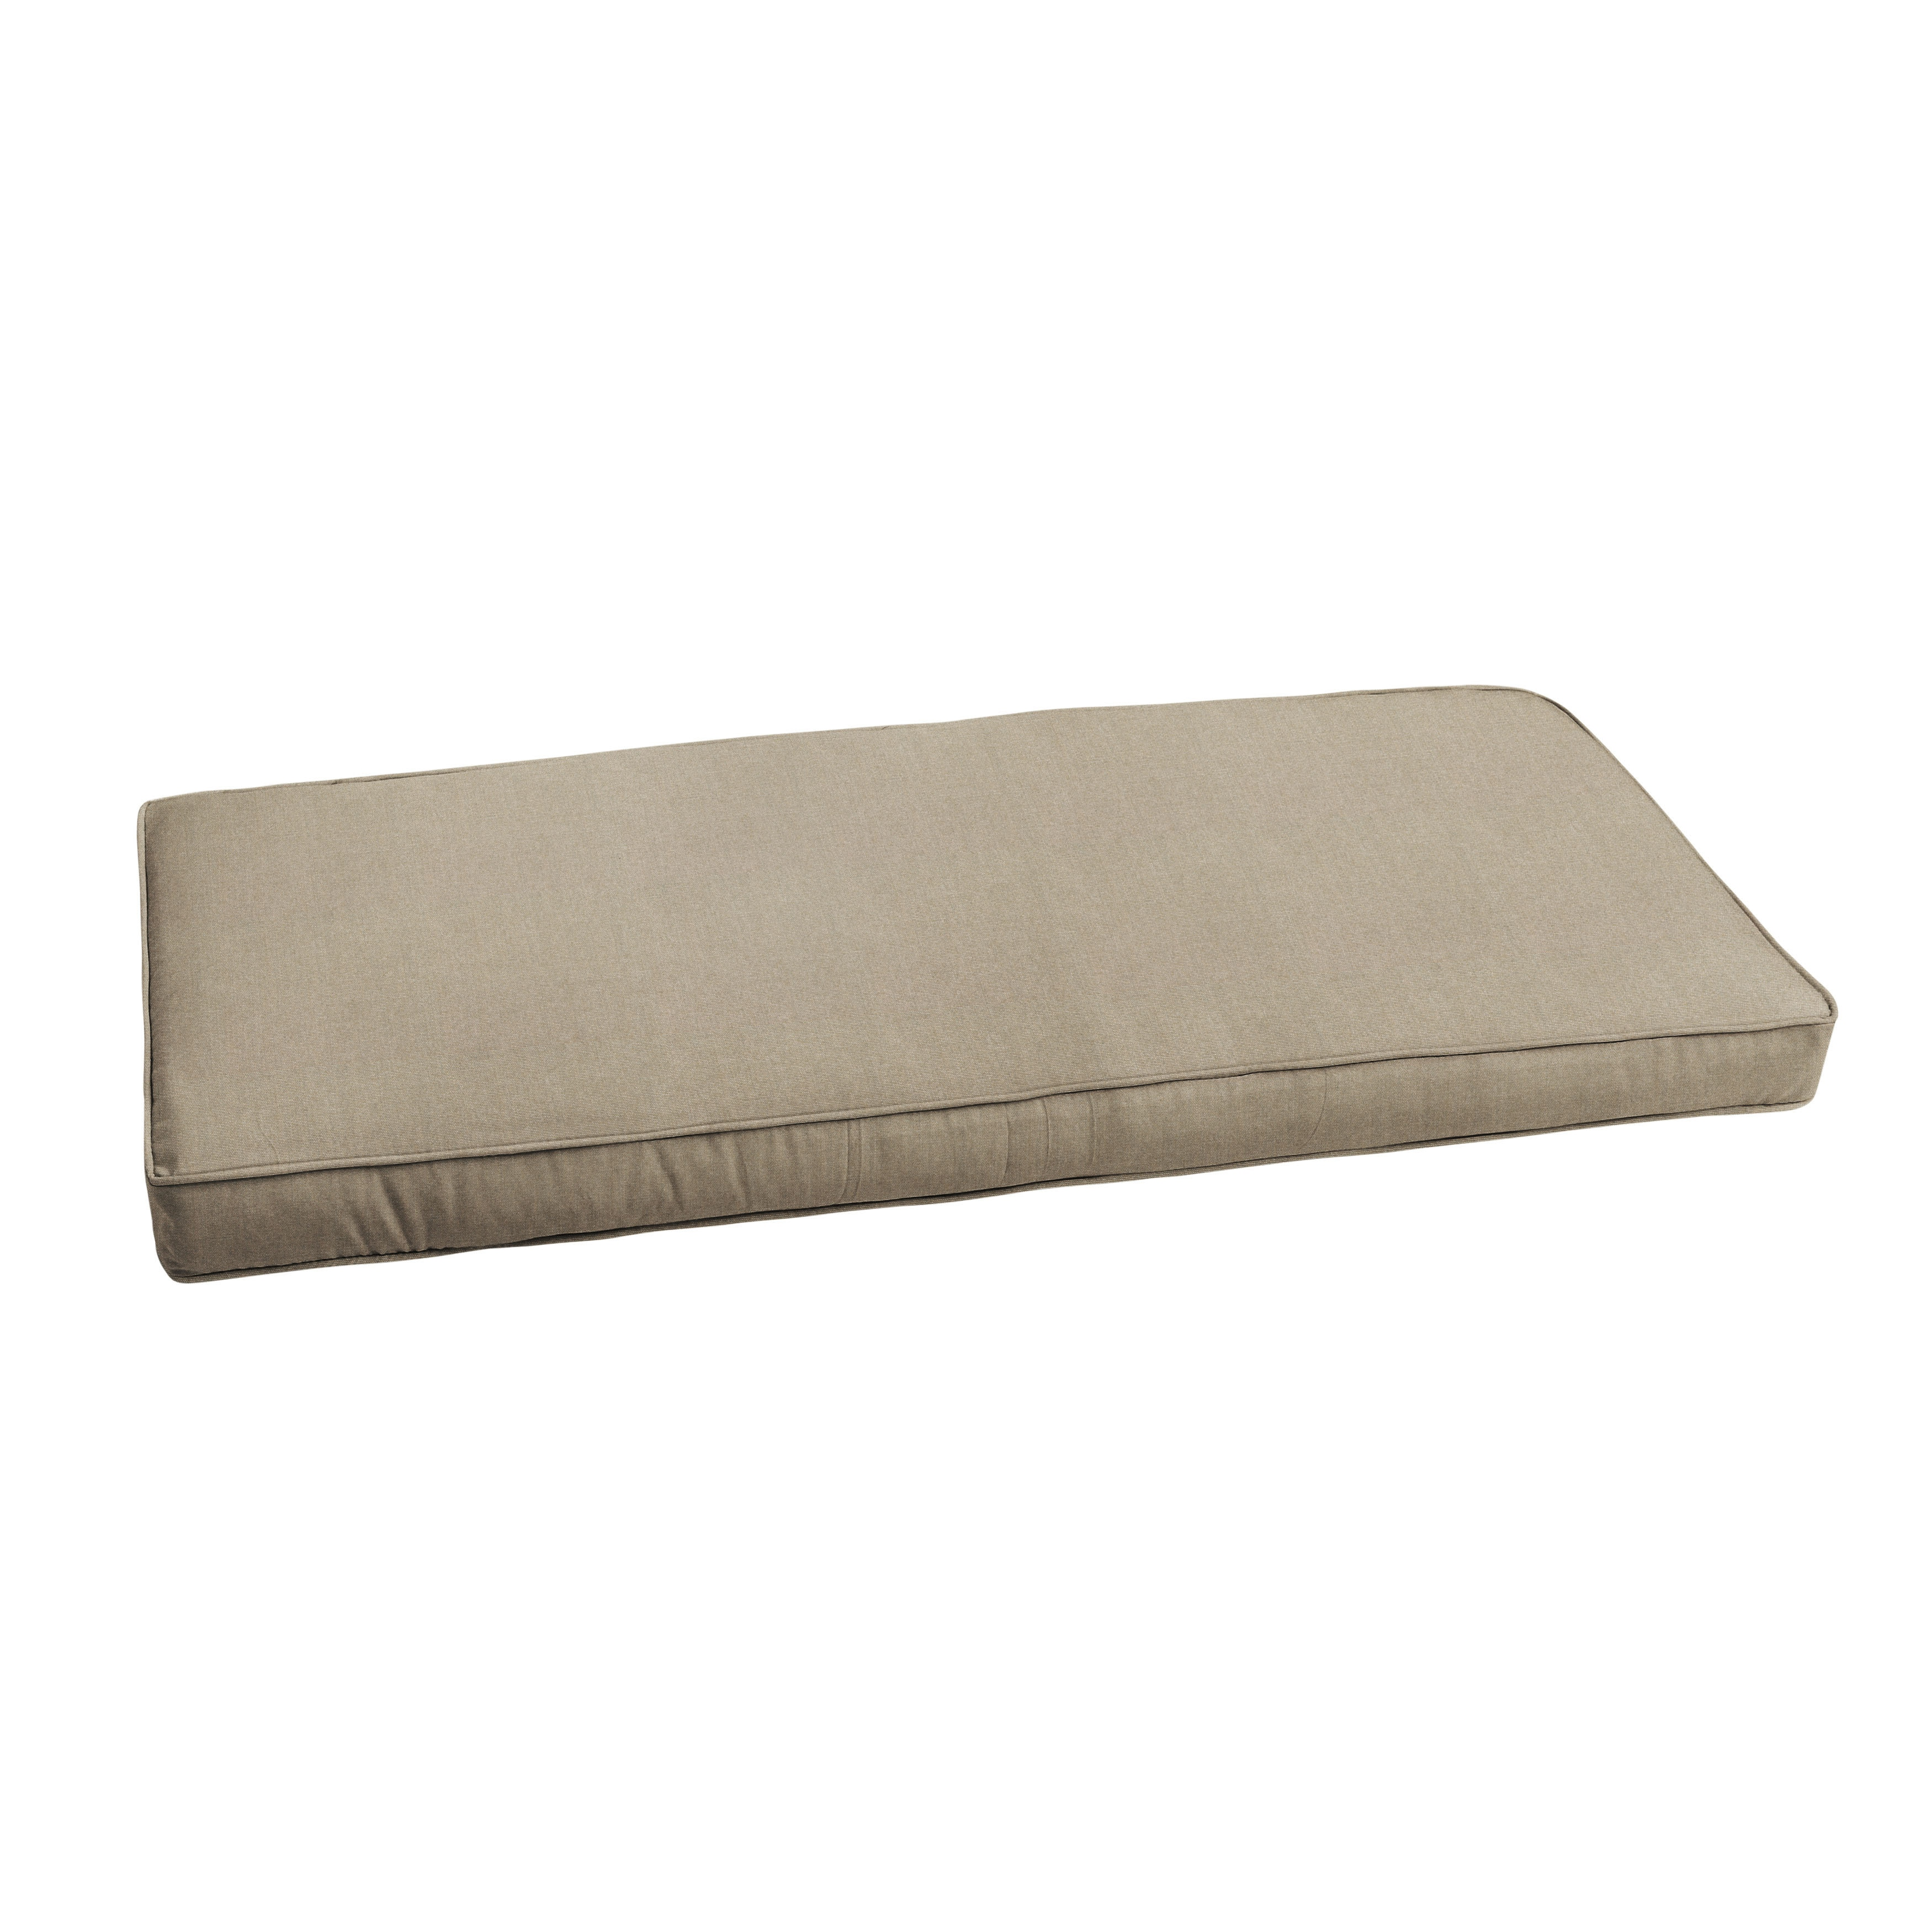 Sunbrella Canvas Taupe Indoor Outdoor Bench Cushion 56 To 60 By Humble Haute Overstock 20105166